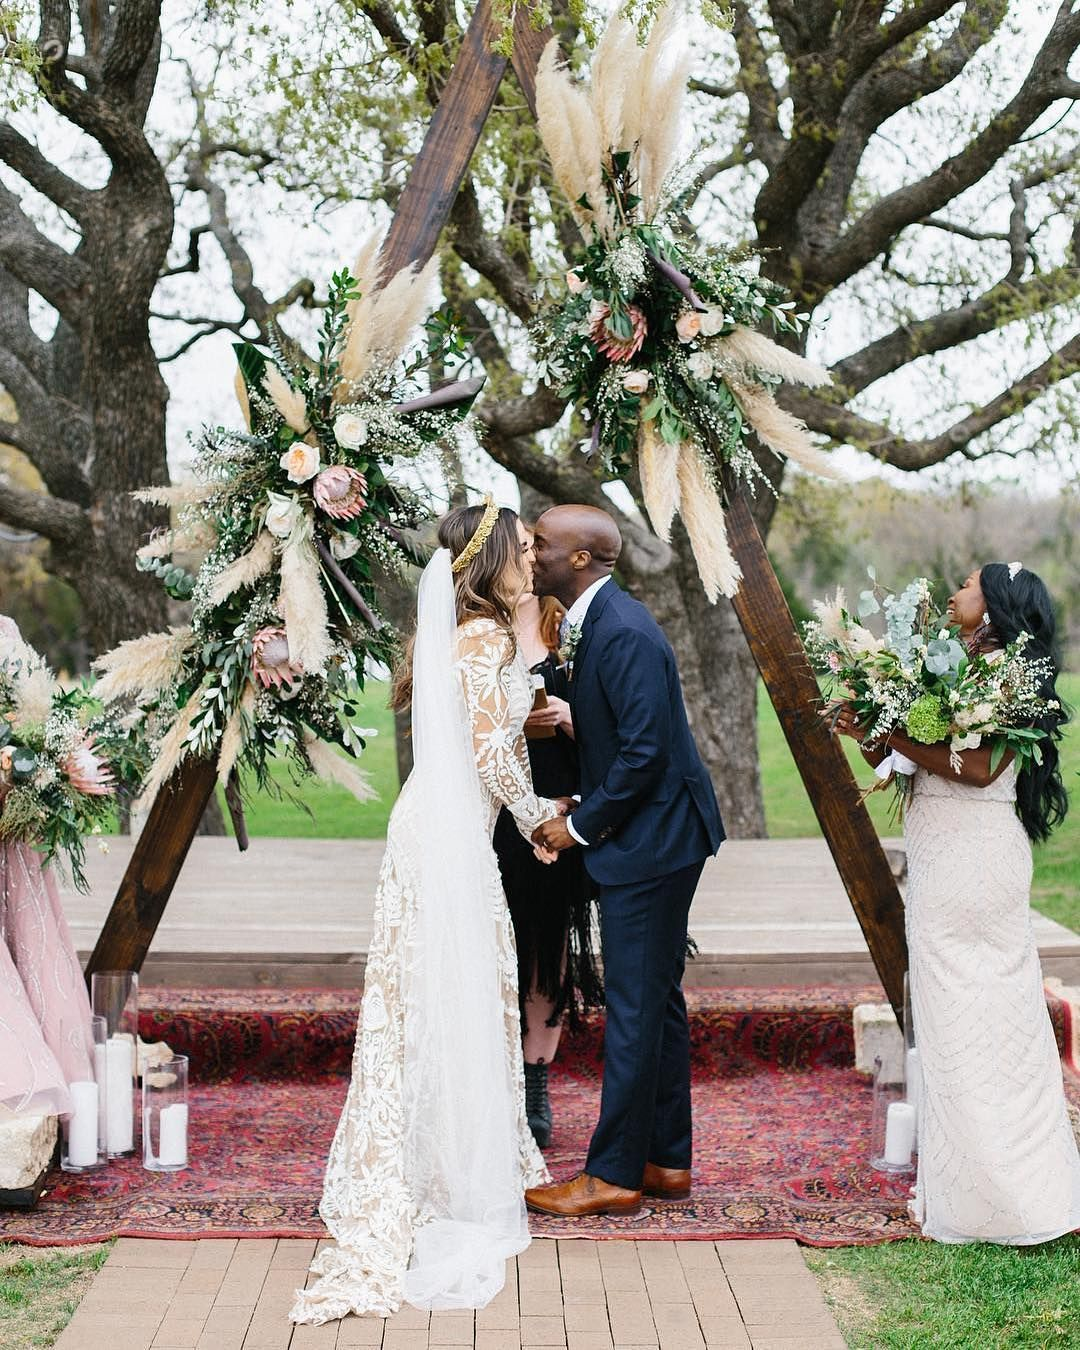 Nuptials At A Ranch In Texas With A Trigon Arch And Pampas Grass Wedding Grass Wedding Backdrop Decorations